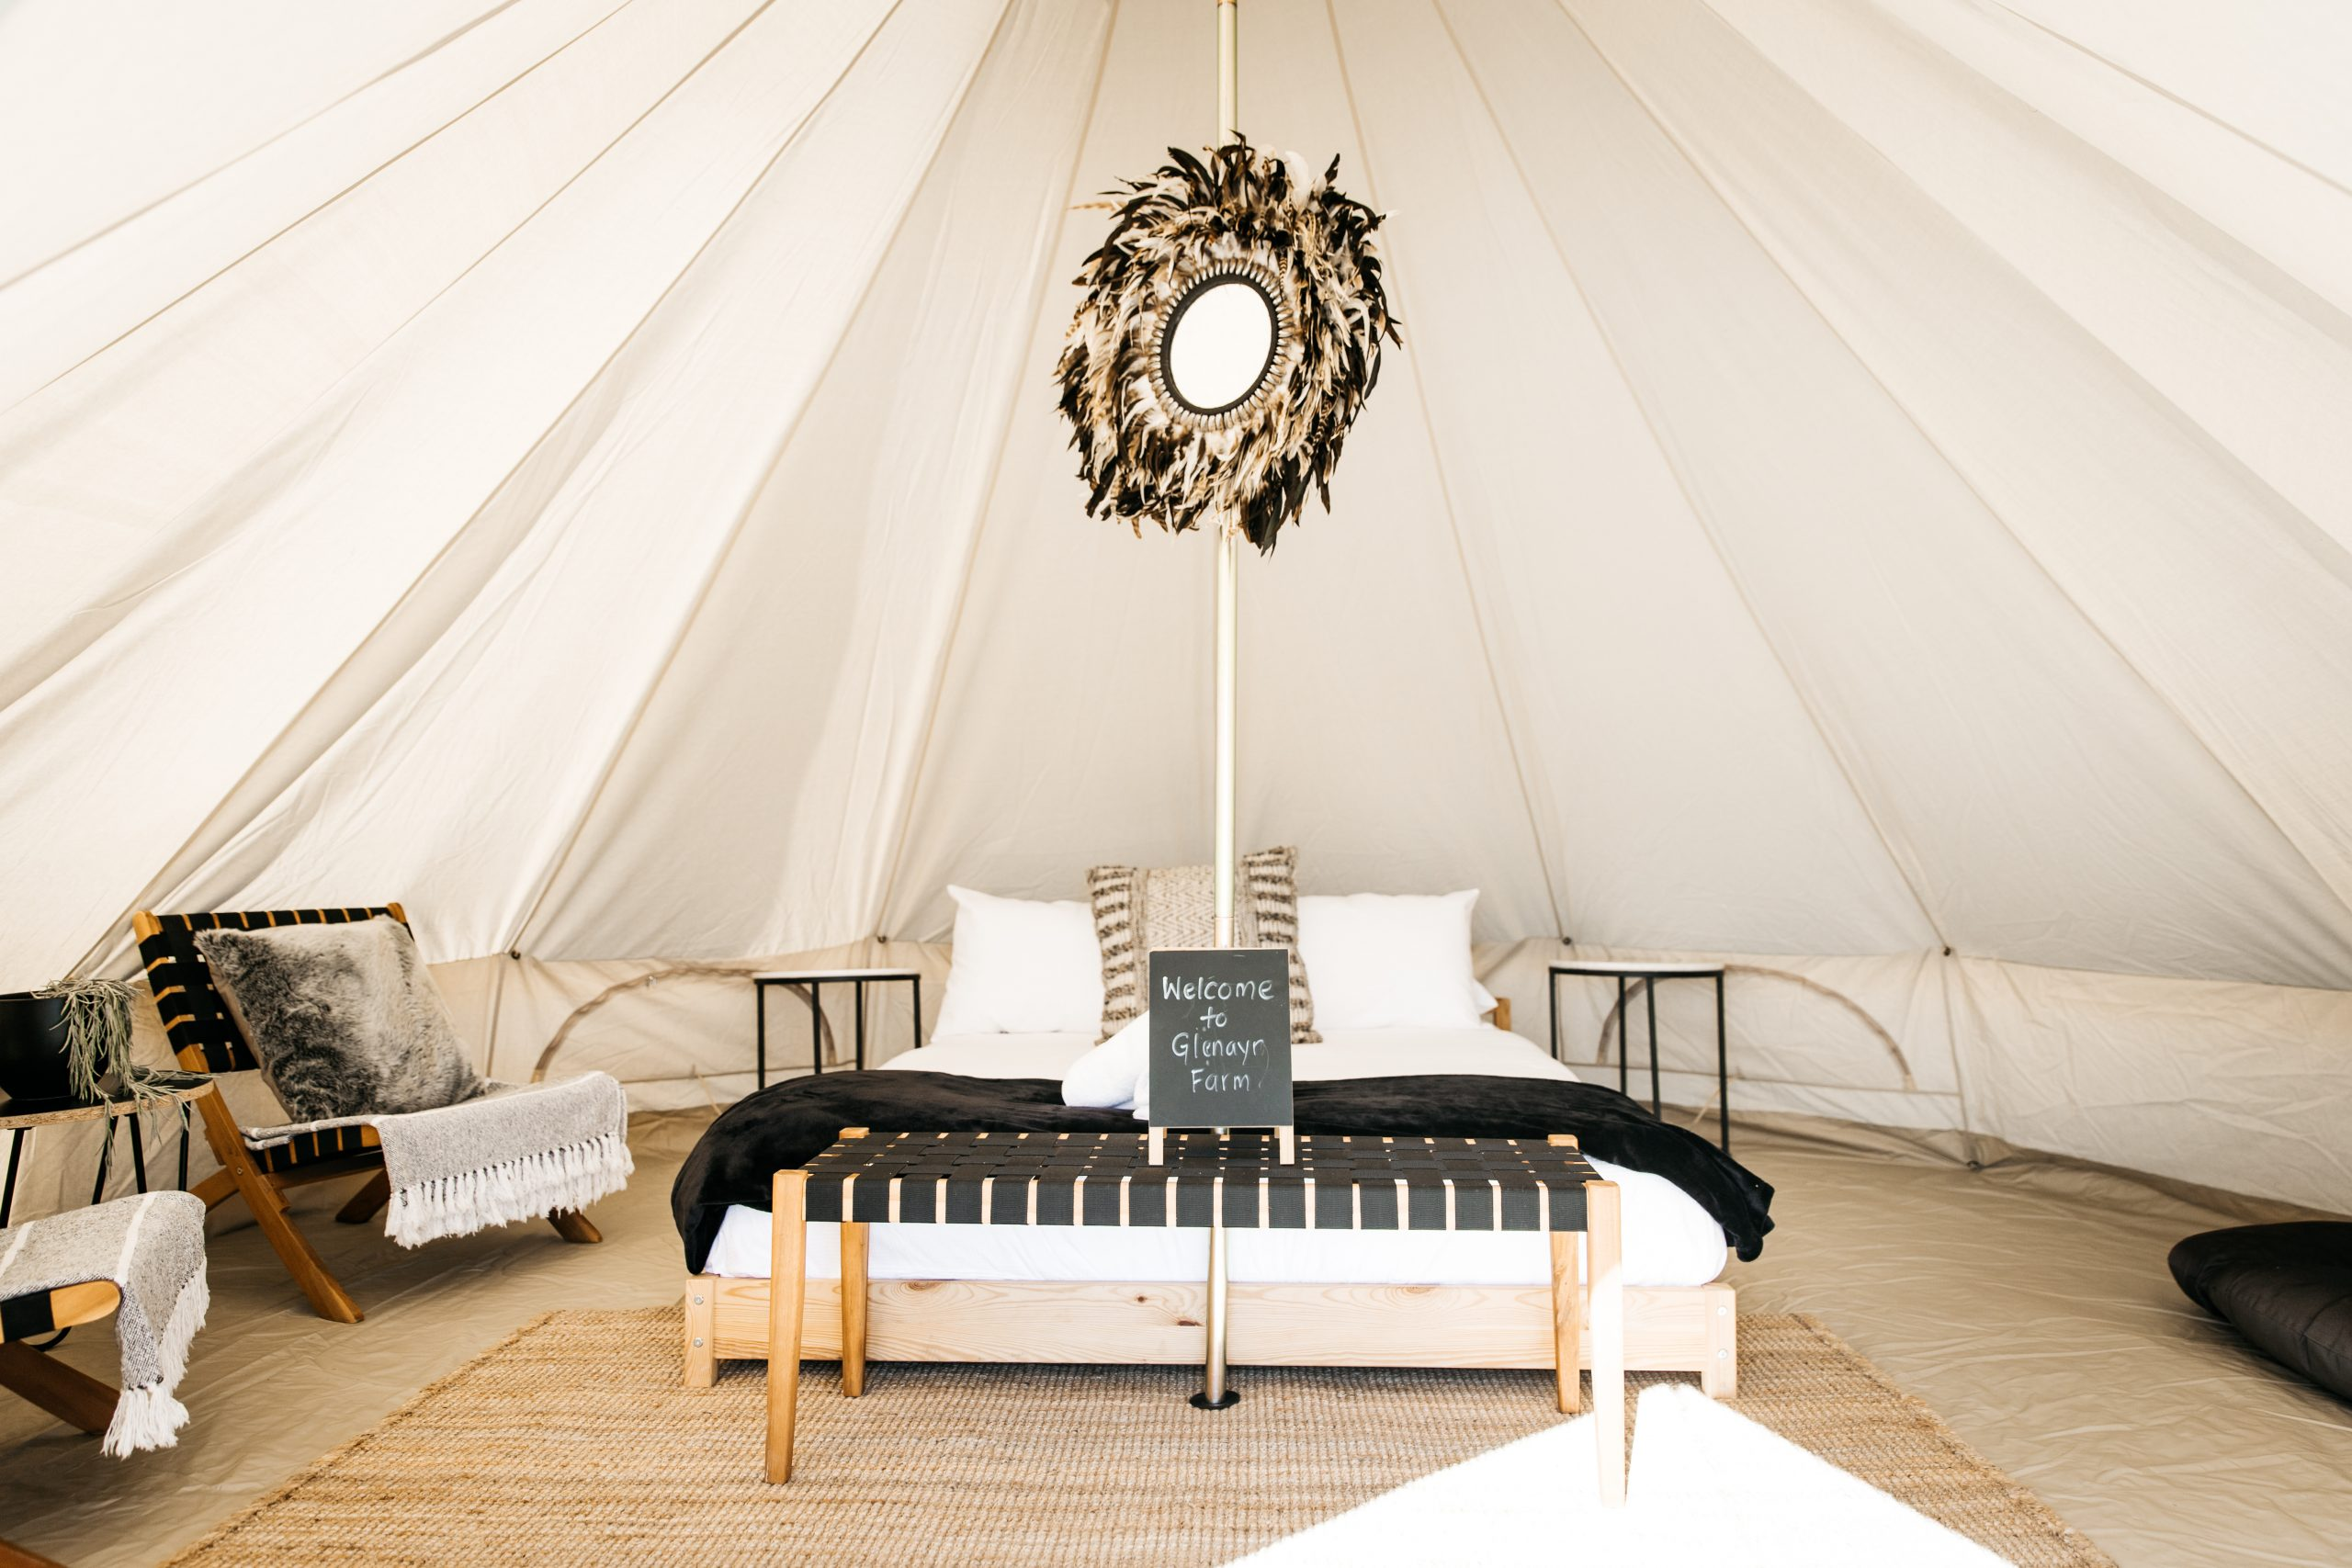 Luxury glamping tent near Mudgee NSW